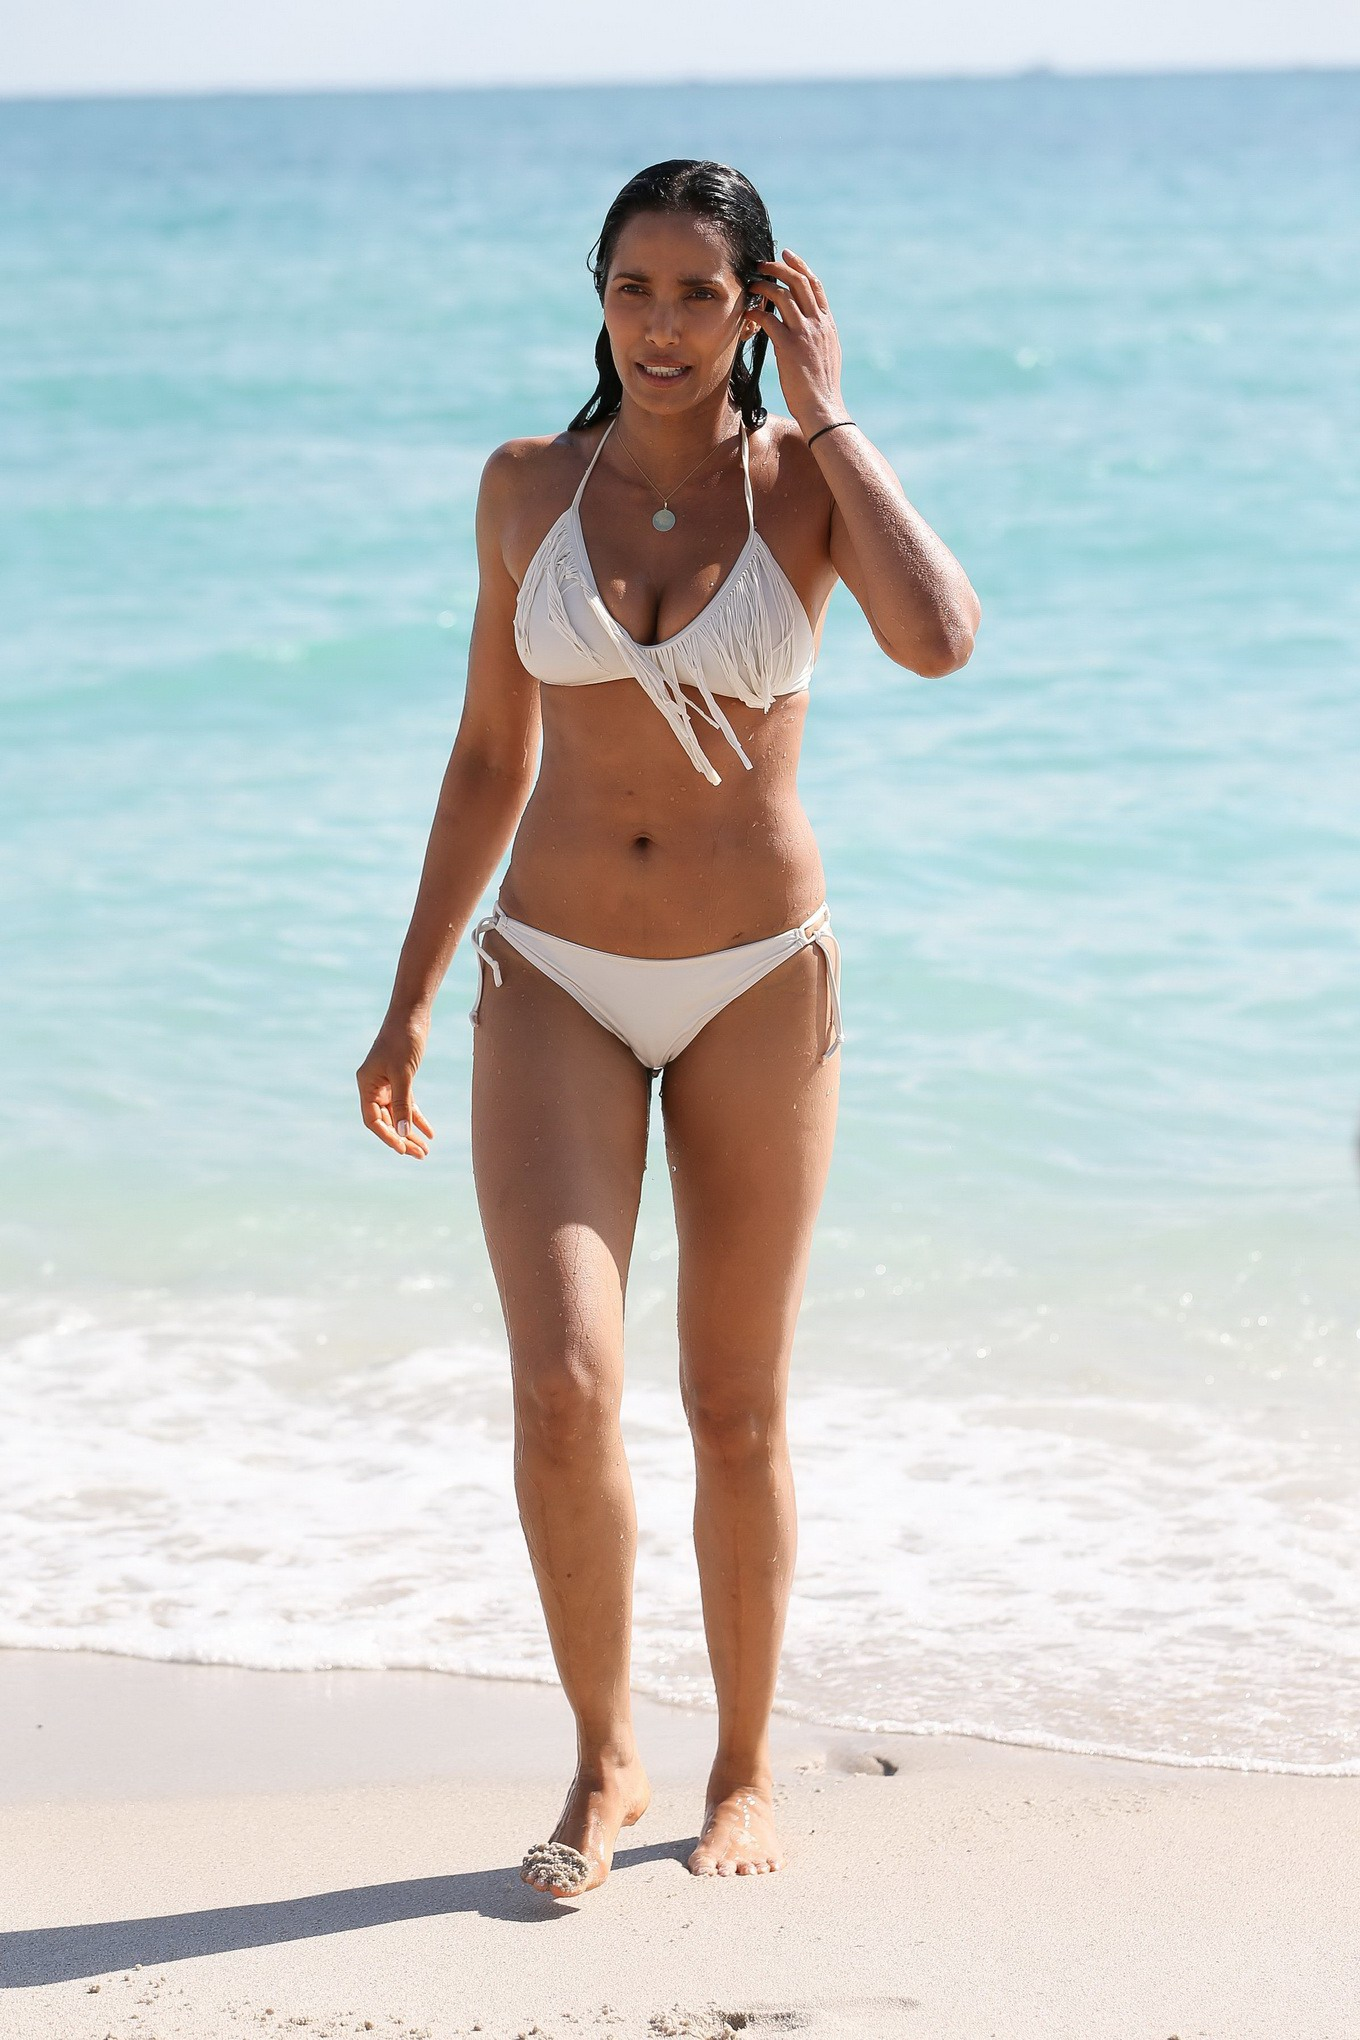 displaying her hot body in a skimpy white bikini at the beach in miami